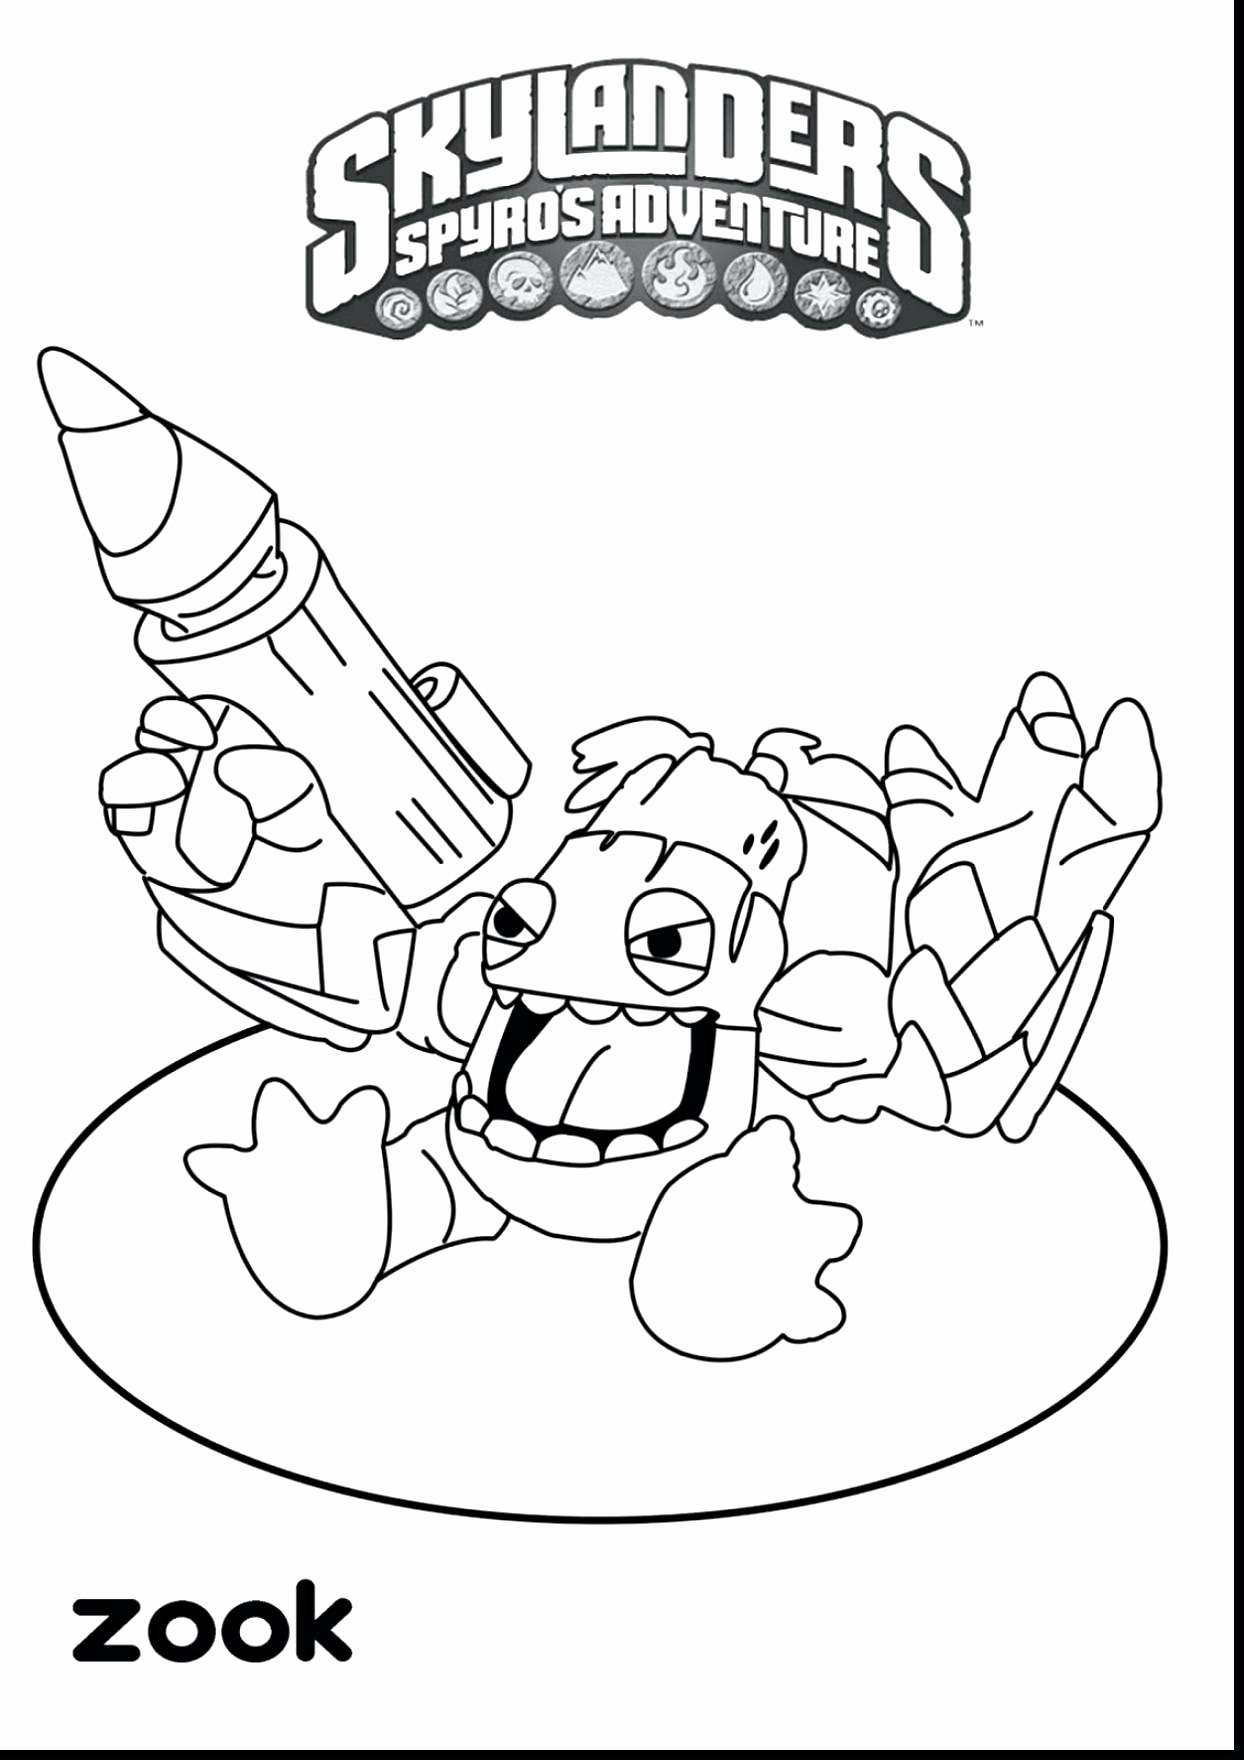 Printable Daisy Coloring Pages  to Print 4j - To print for your project